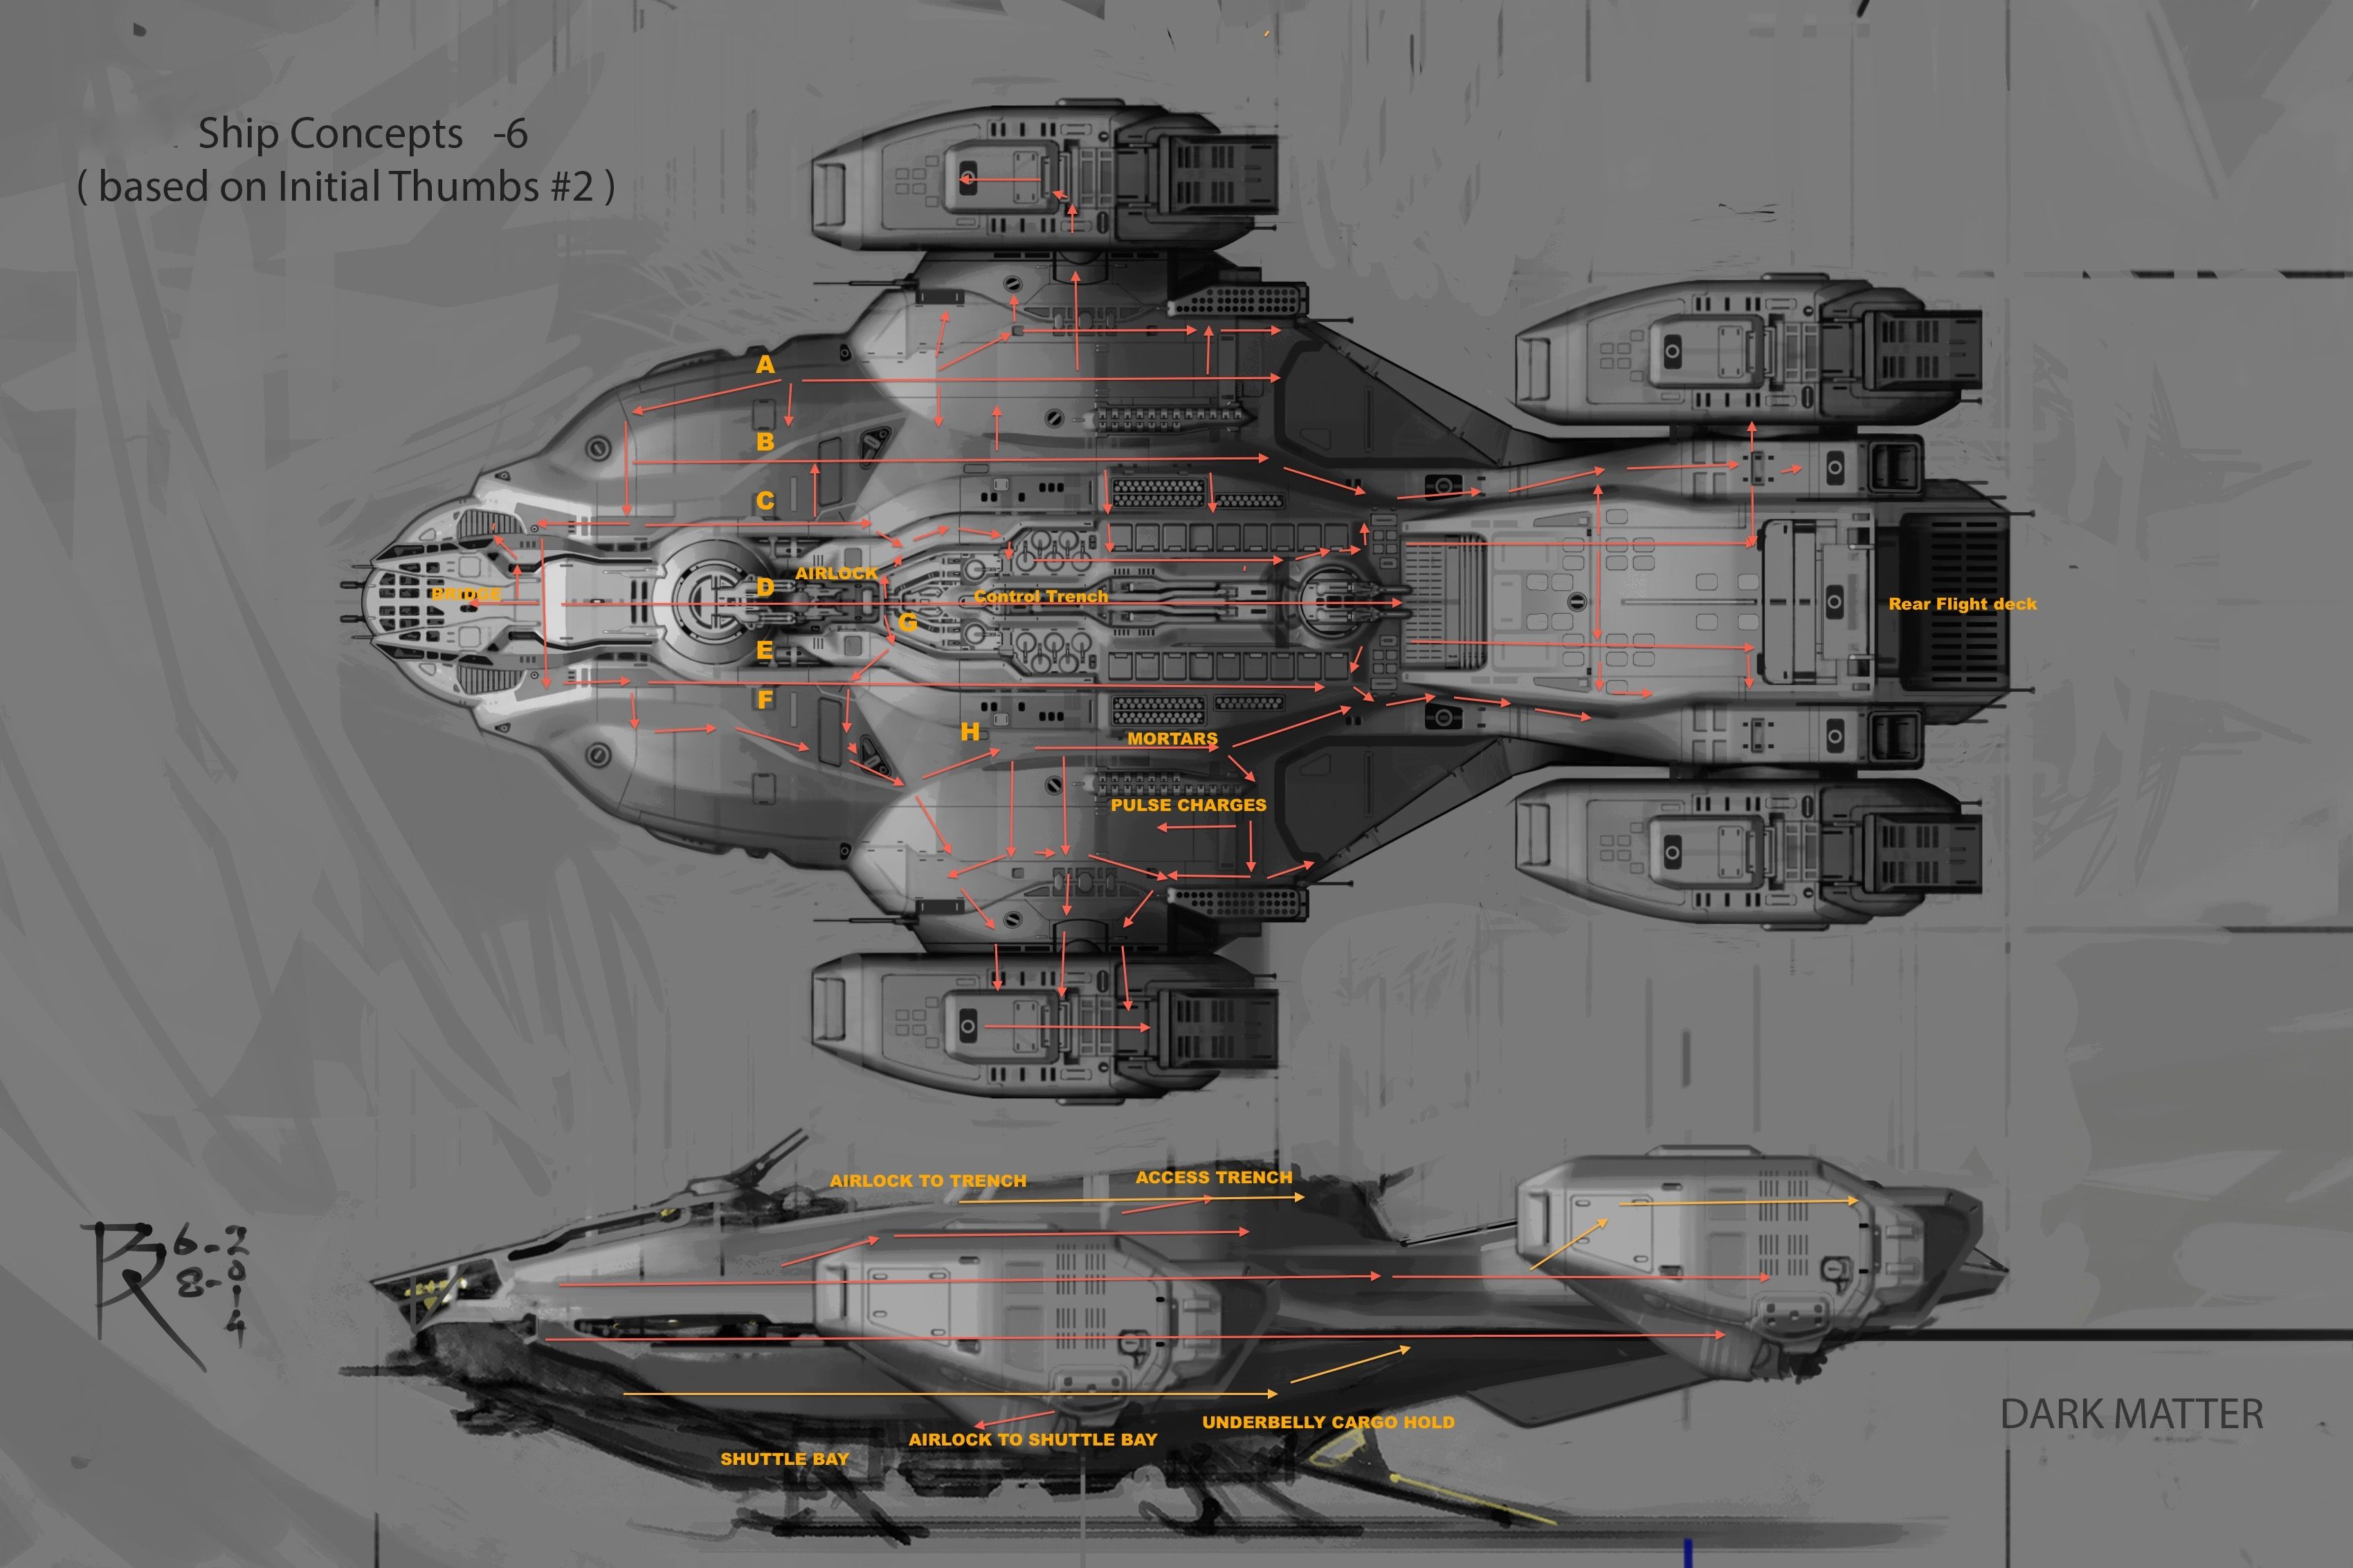 Black themed spaceship conceptual artwork and wallpapers 1 design - Concept Art